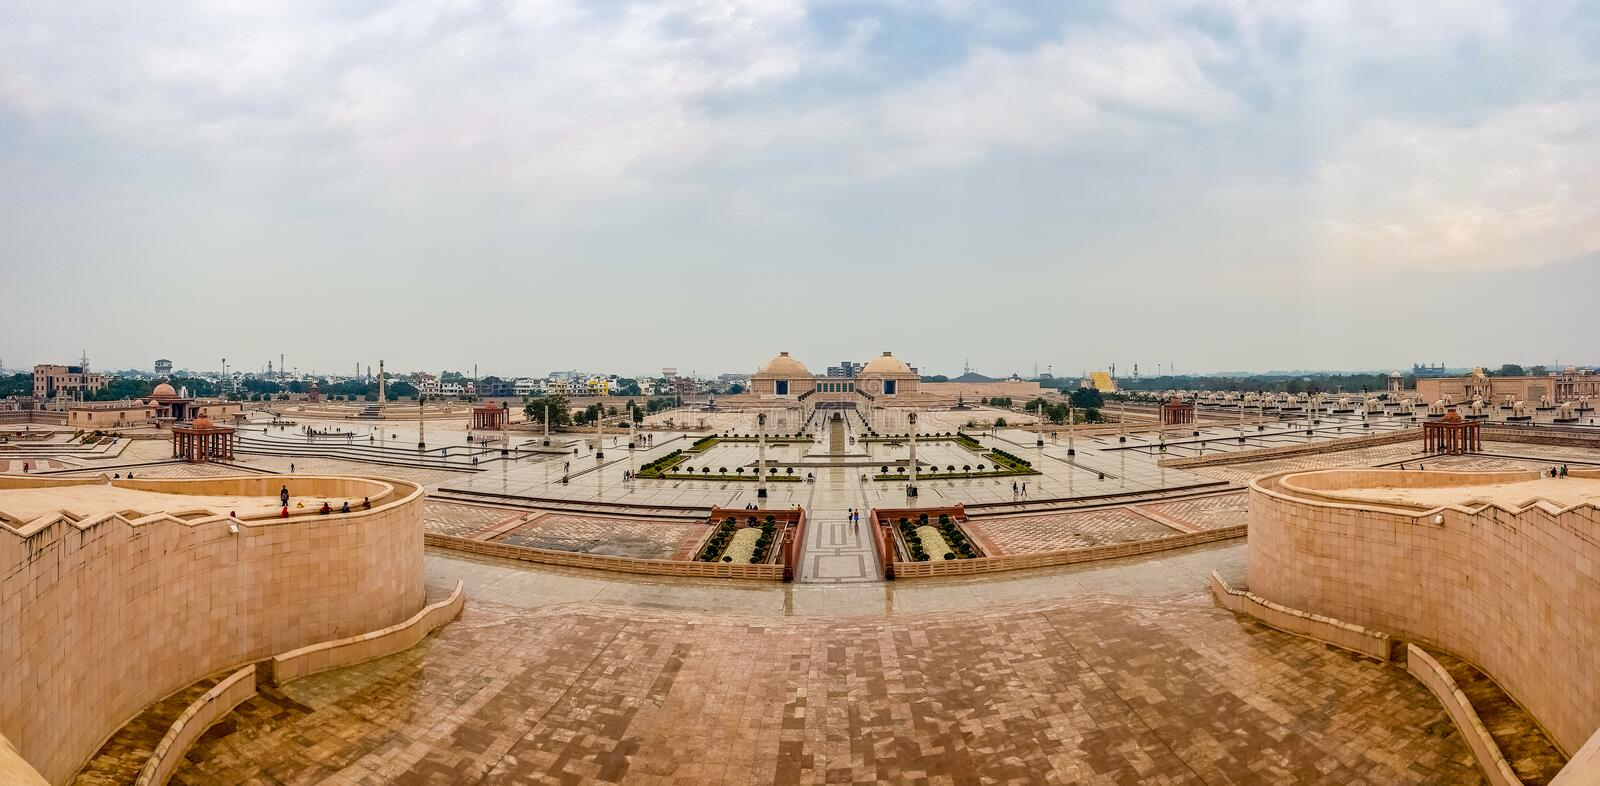 December 15.2019. The ambedkar memorial park of lucknow. It is a massive area of stonework in the city of lucknow and a royalty free stock photo